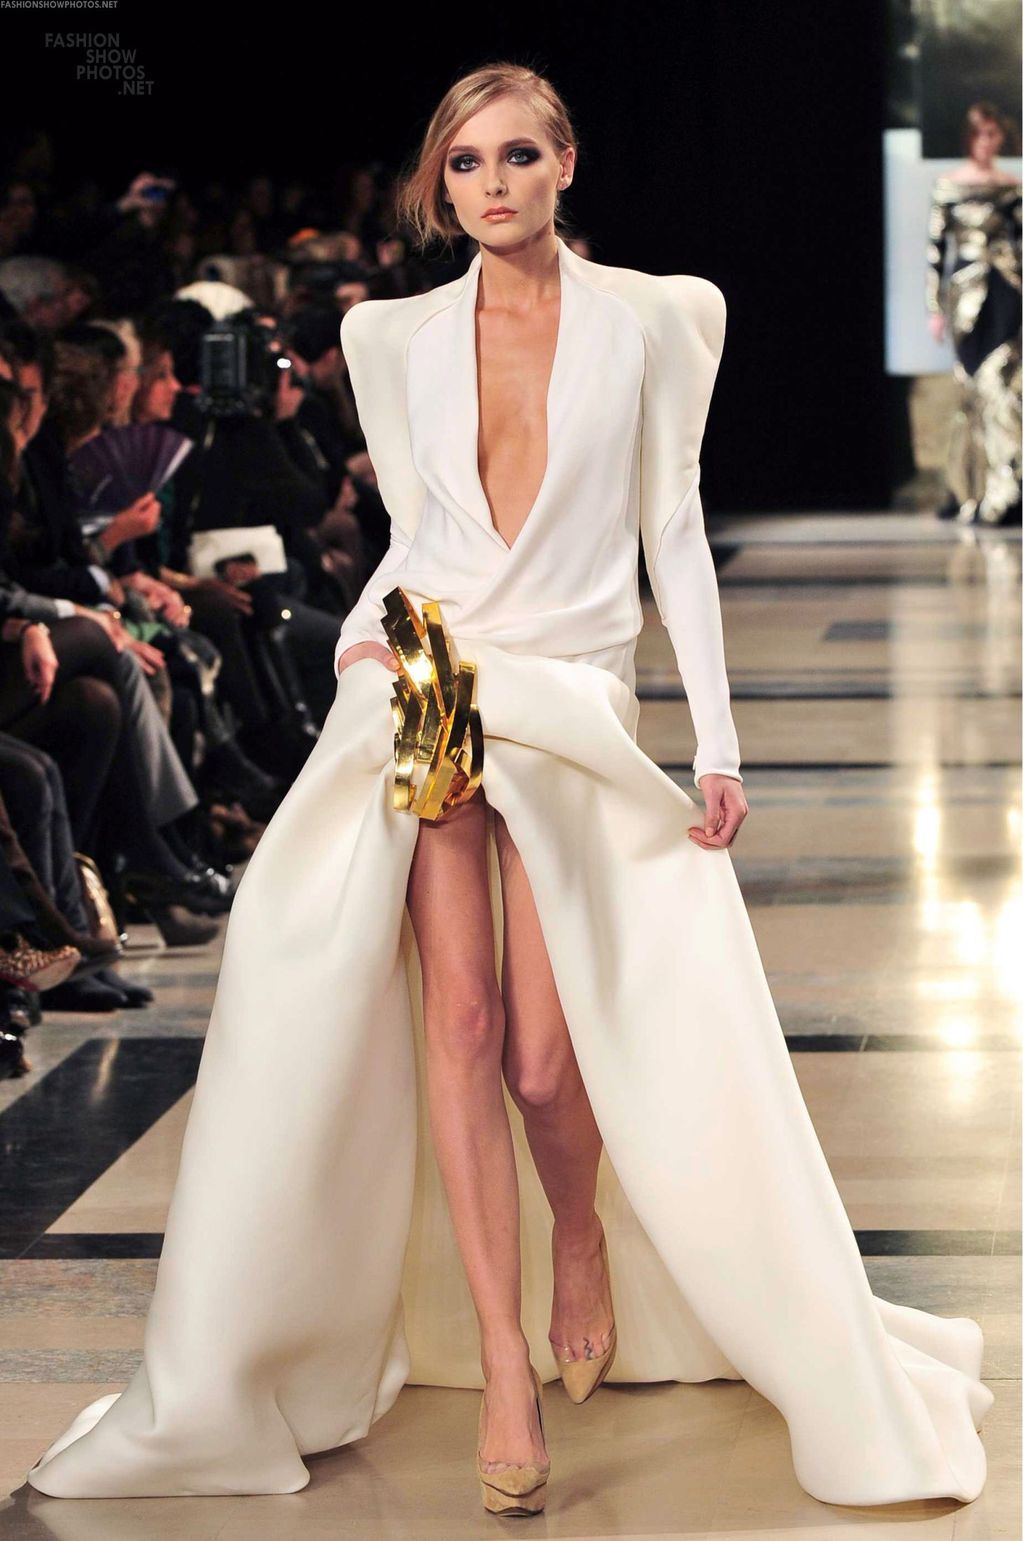 tuxedo dress I love minus the shoulders and the model could use a meal. Sorry not sorry